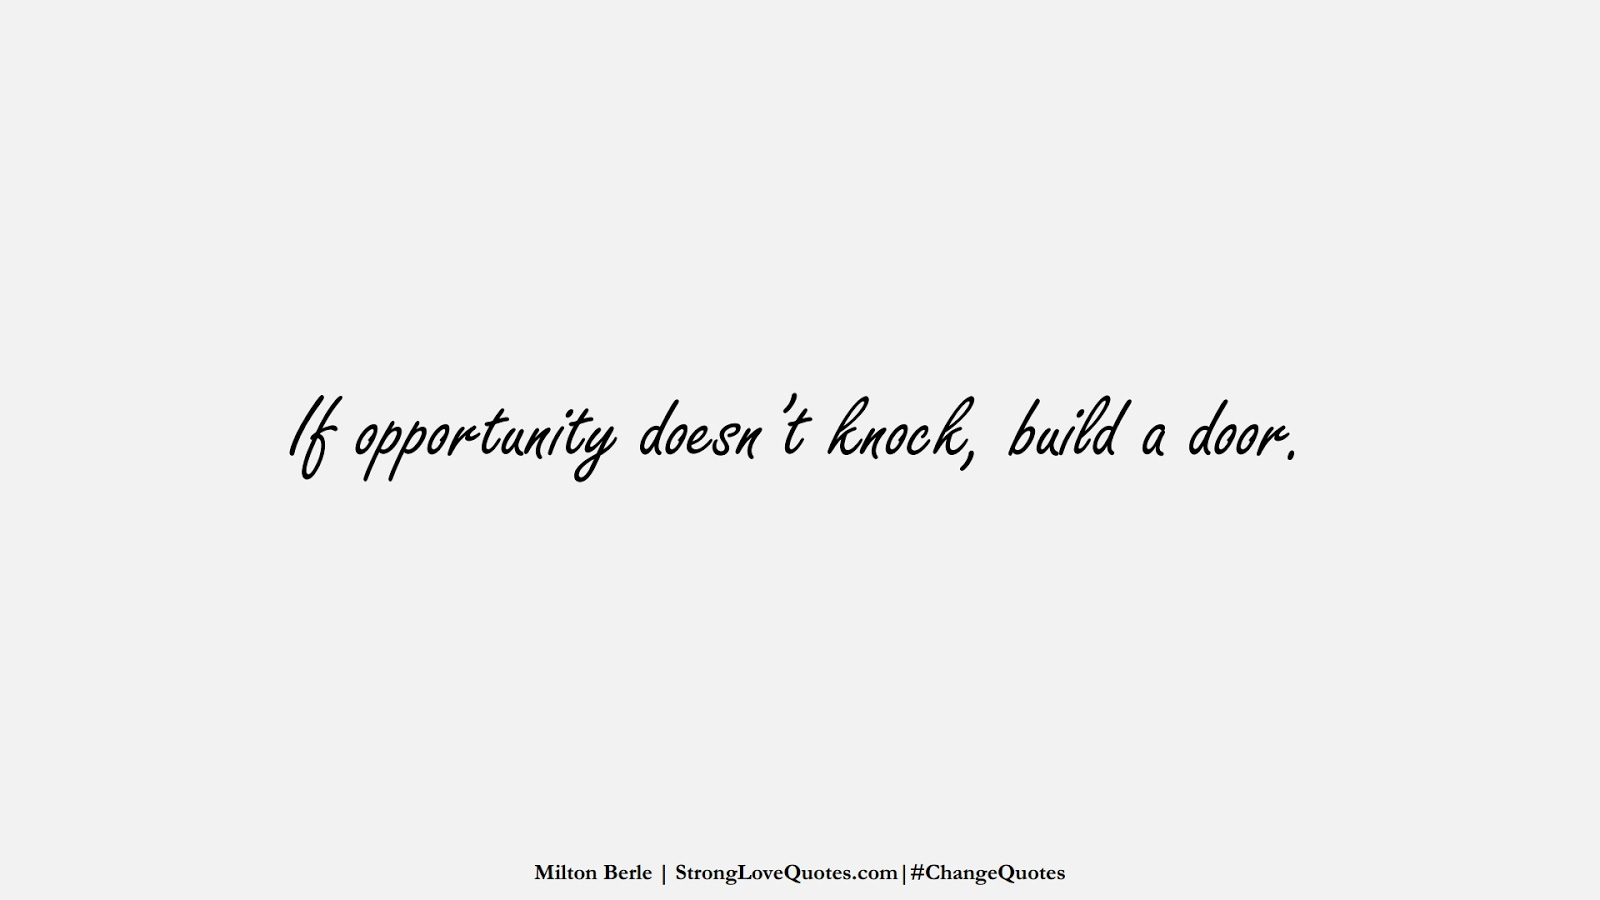 If opportunity doesn't knock, build a door. (Milton Berle);  #ChangeQuotes